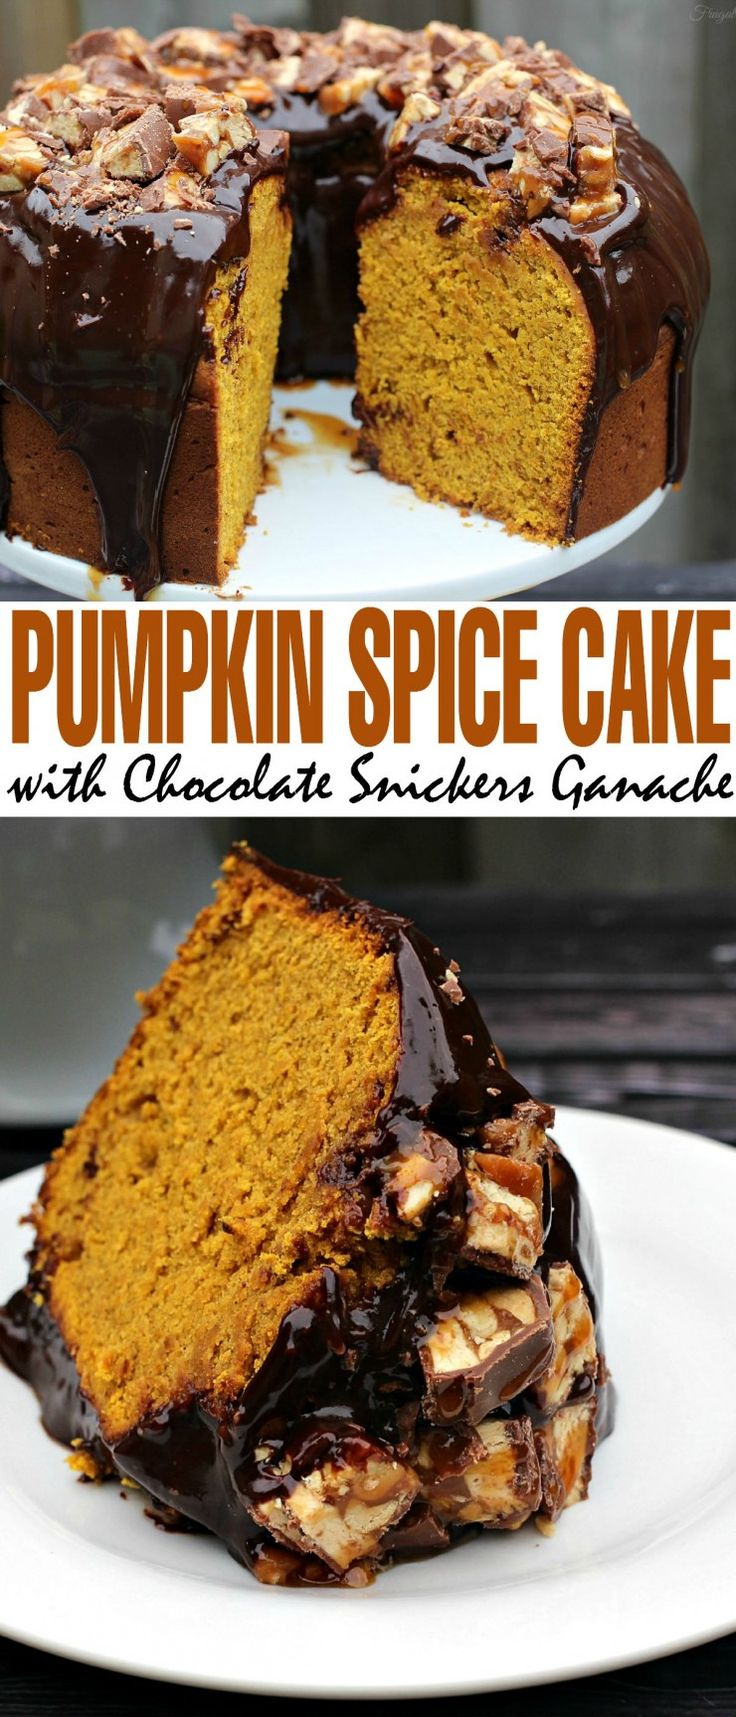 This Pumpkin Spice Cake with Chocolate Snickers Ganache is a decadent ...